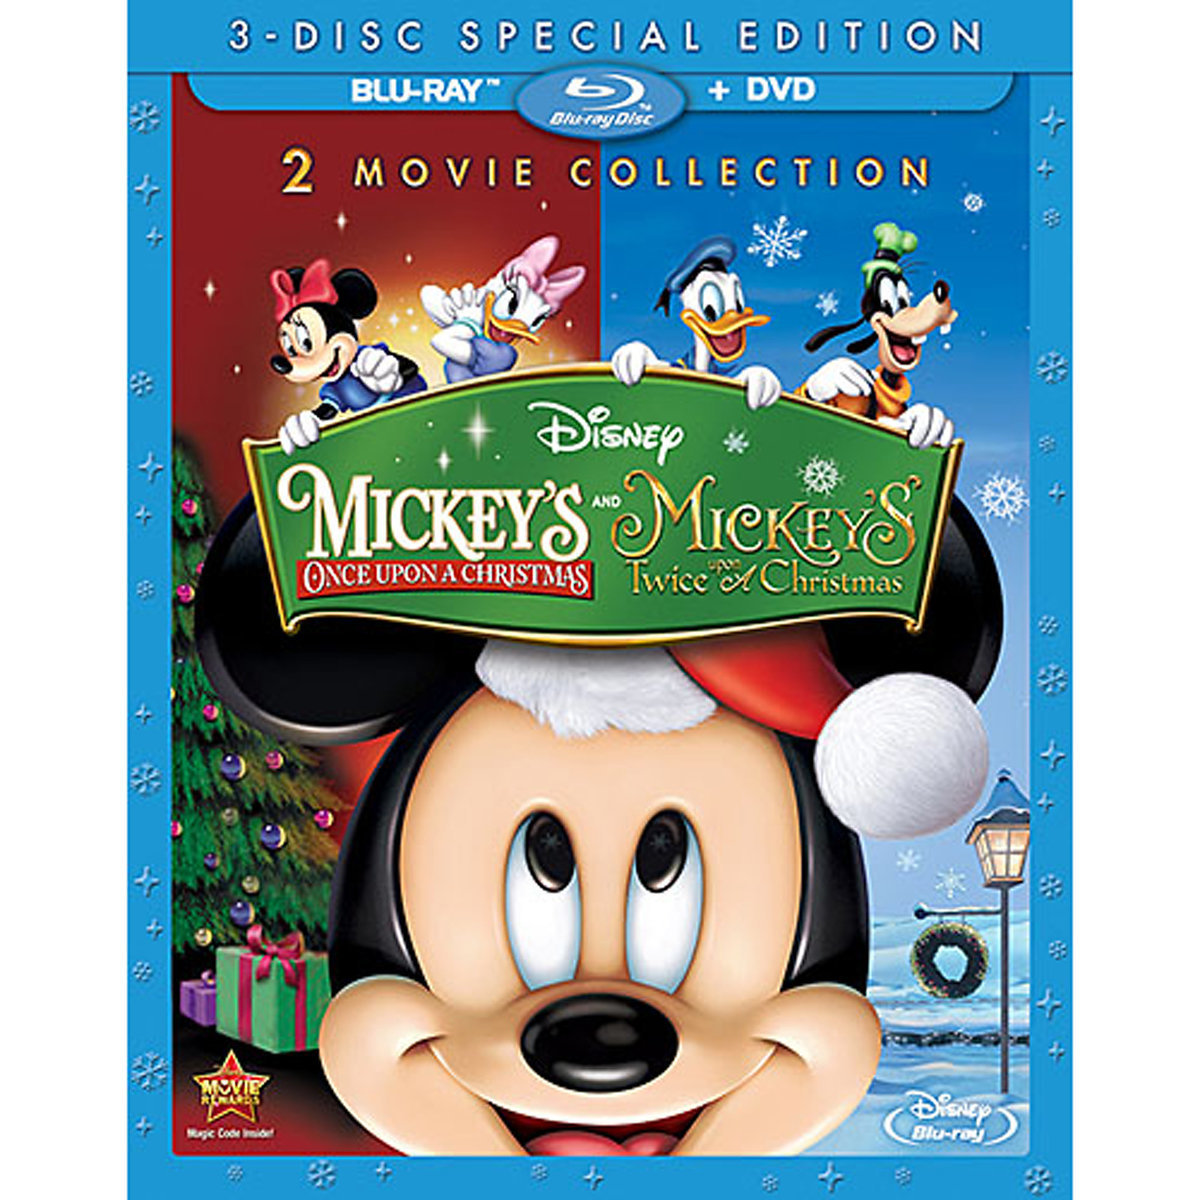 Mickeys Twice Upon A Christmas.Mickey S Once Upon A Christmas And Mickey S Twice Upon A Christmas Special Edition Blu Ray Dvd